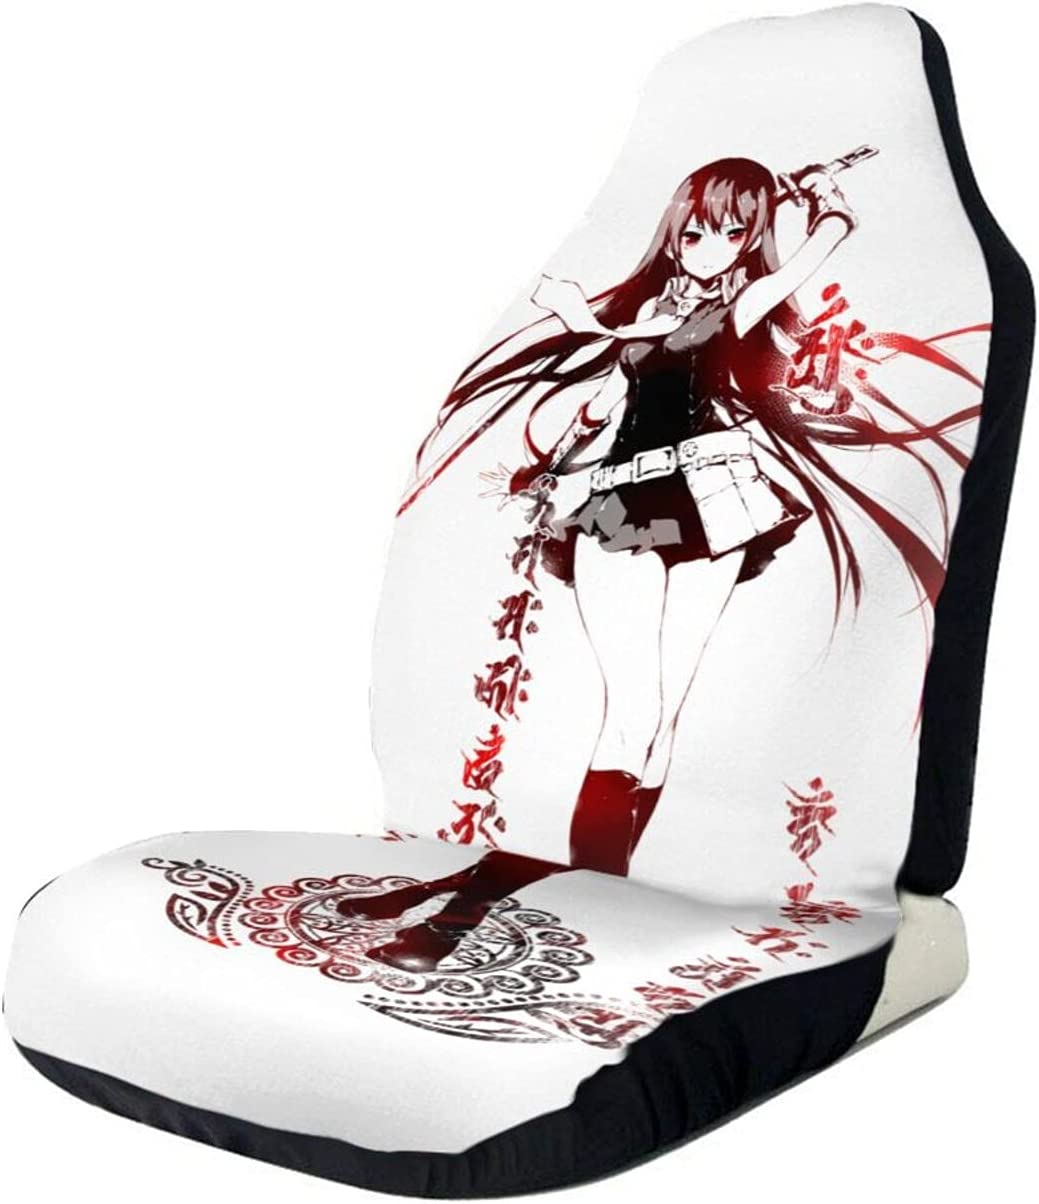 Akame Ga Kill 67% Safety and trust OFF of fixed price Car Protection Cover Seat General